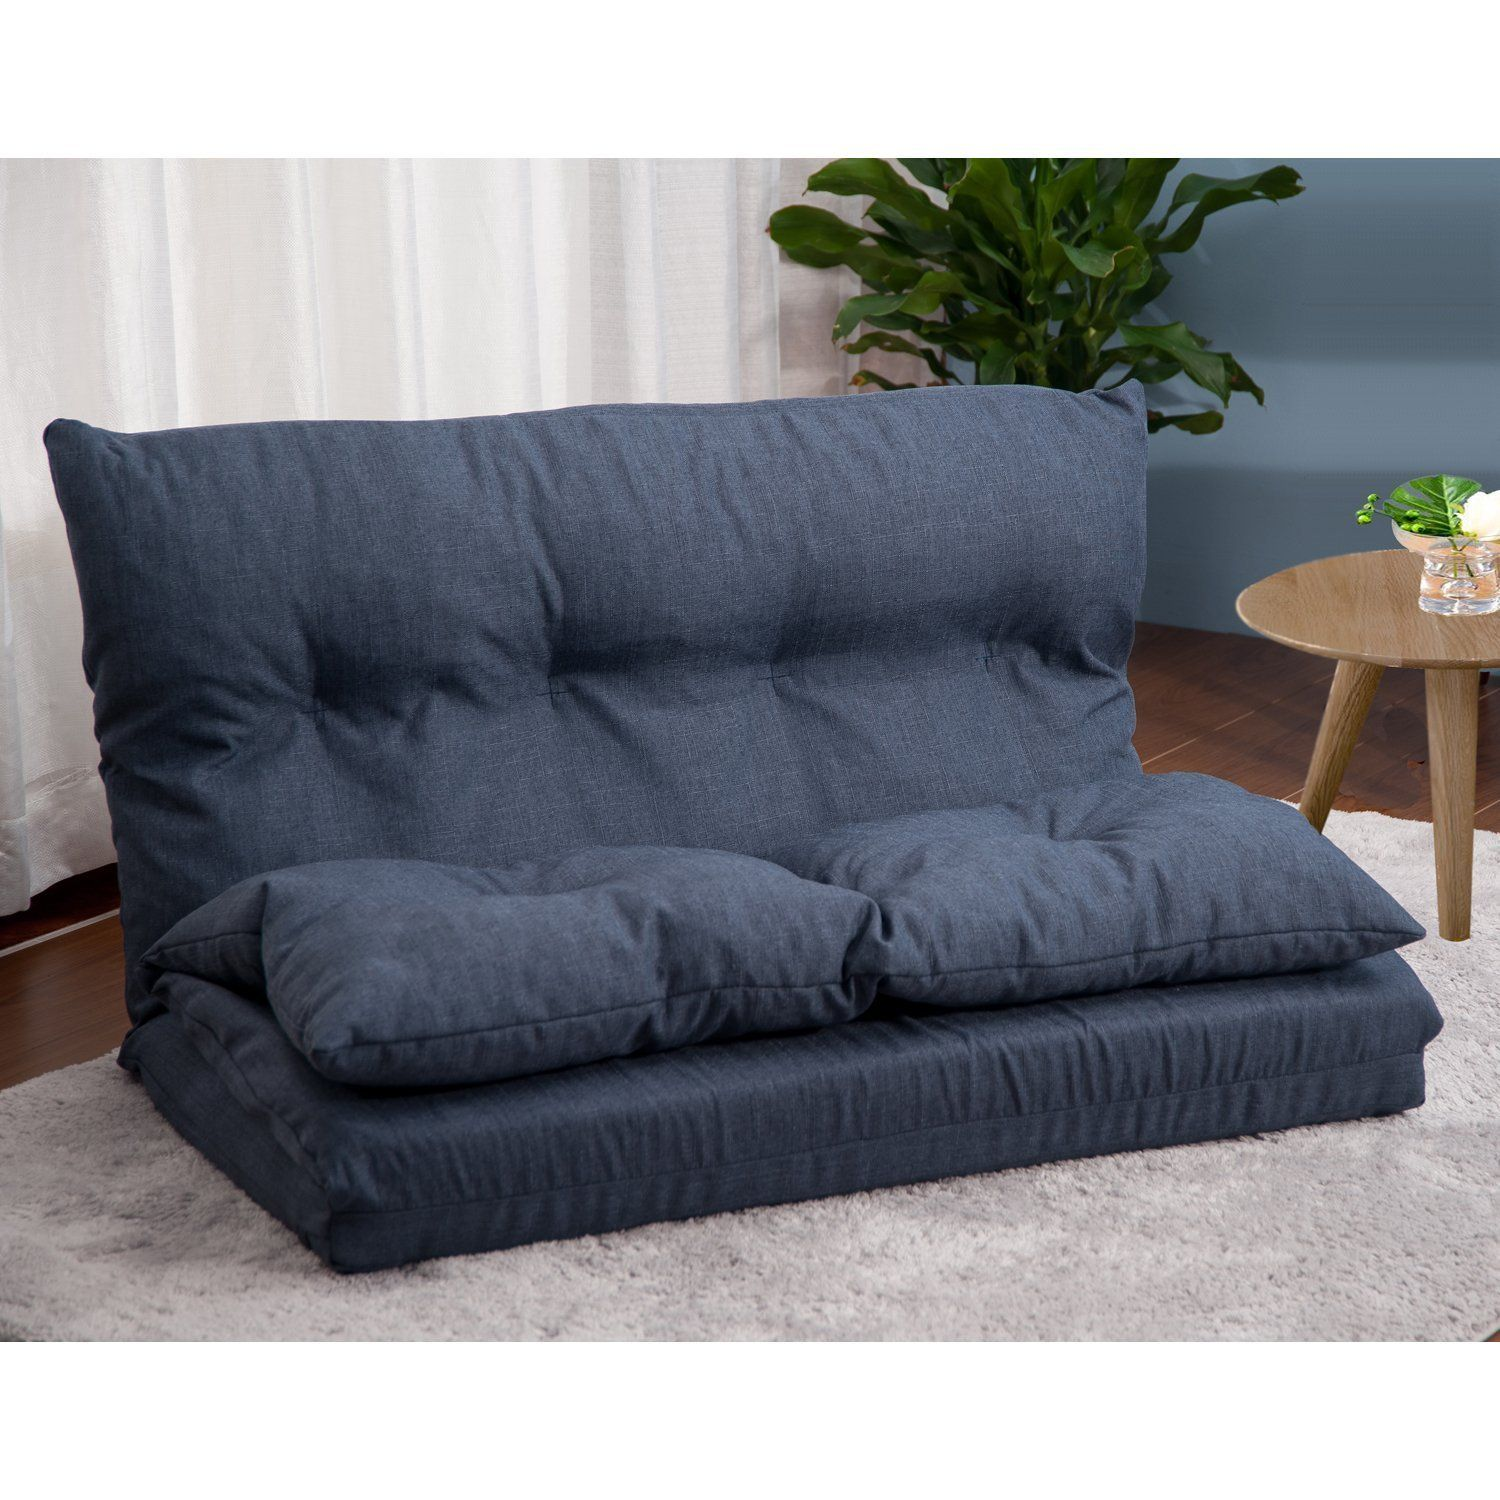 Amazon Sofa Sale Clever Multipurpose Furniture That S Perfect For Small Spaces